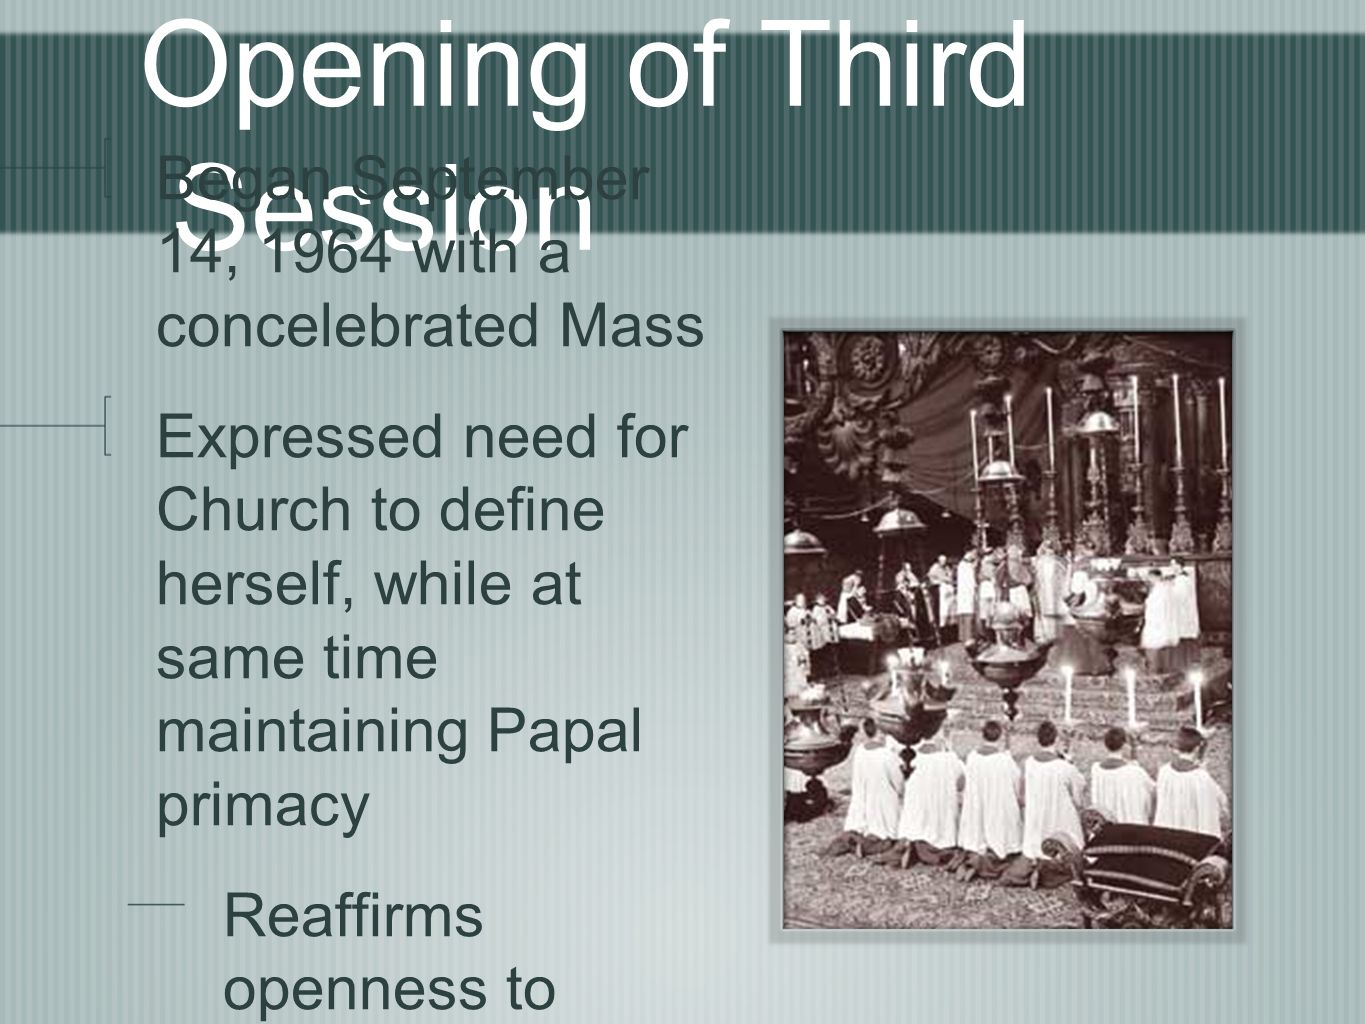 Opening of Third Session Began September 14, 1964 with a concelebrated Mass Expressed need for Church to define herself, while at same time maintaining Papal primacy Reaffirms openness to collegiality